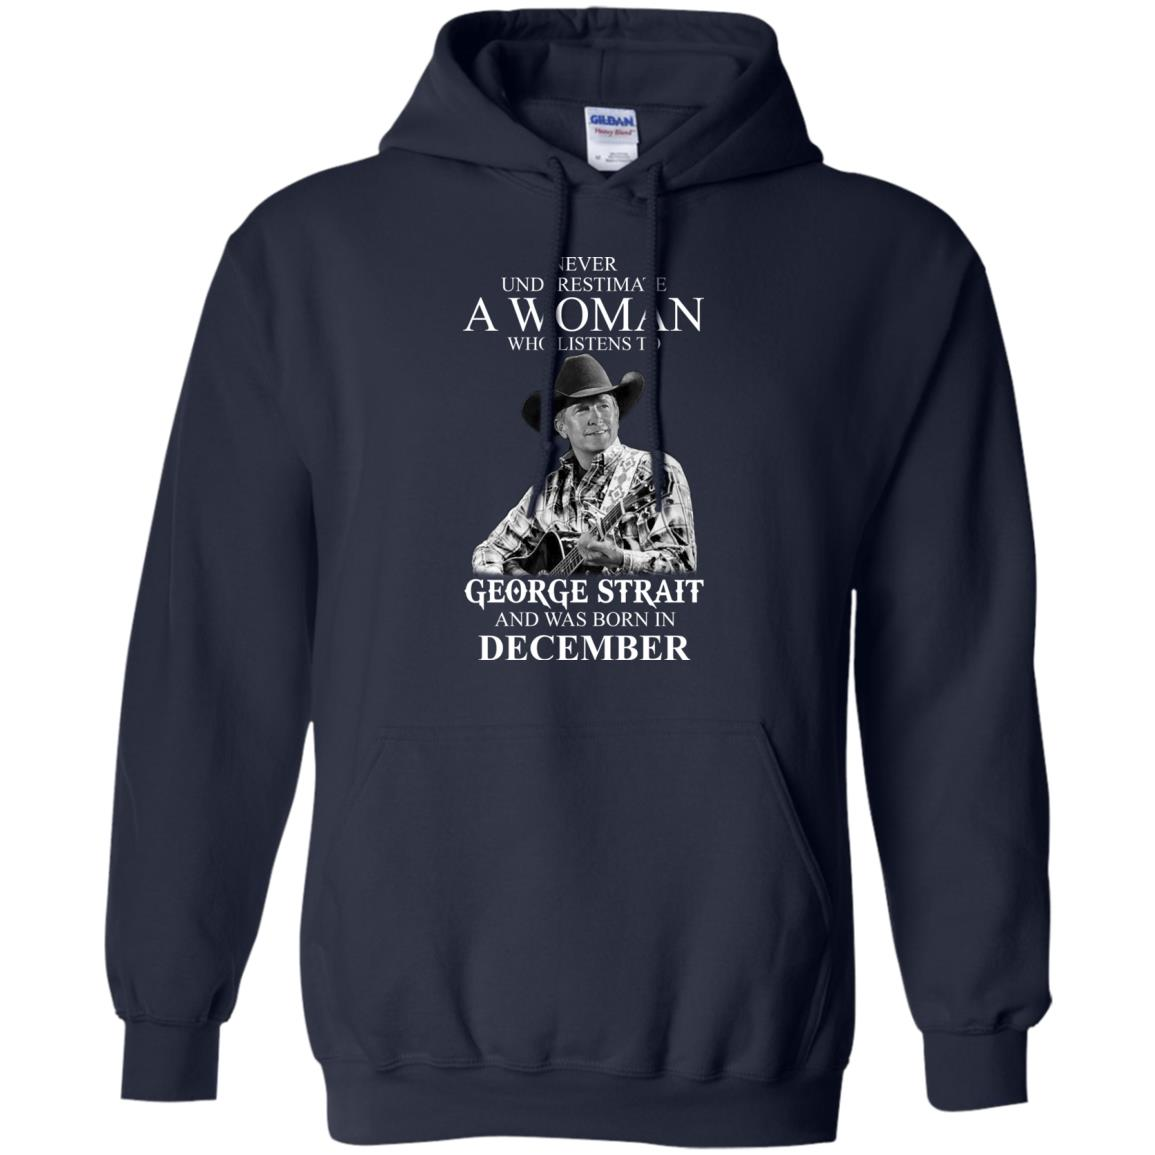 image 343 - Never Underestimate A Woman Who Listens To George Strait And Was Born In December shirt